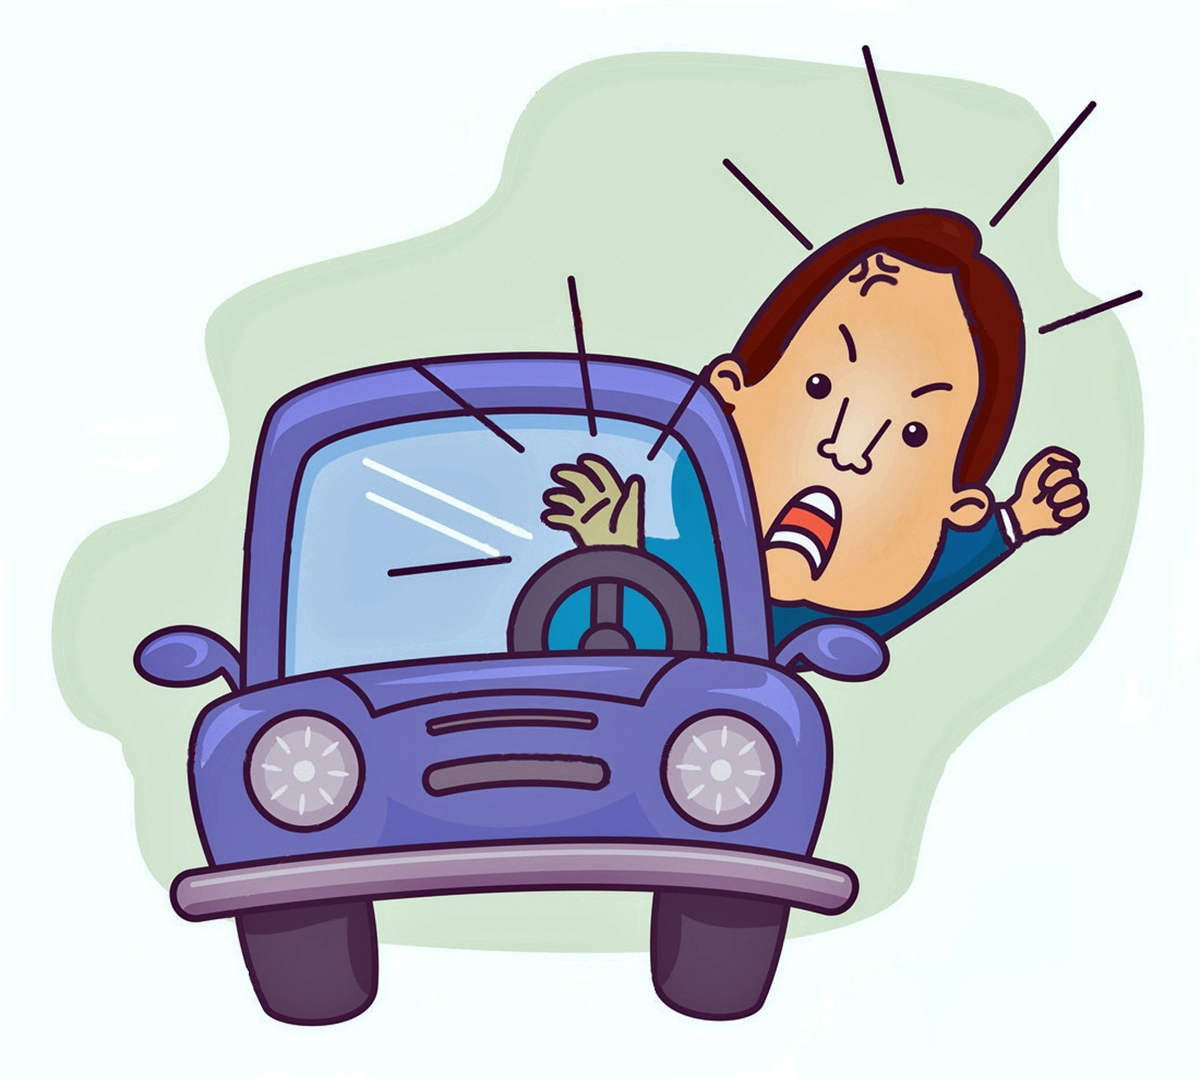 00 road rage cartoon 21 07 13 voices from russia clipart conductor orchestra clipart conductor orchestra